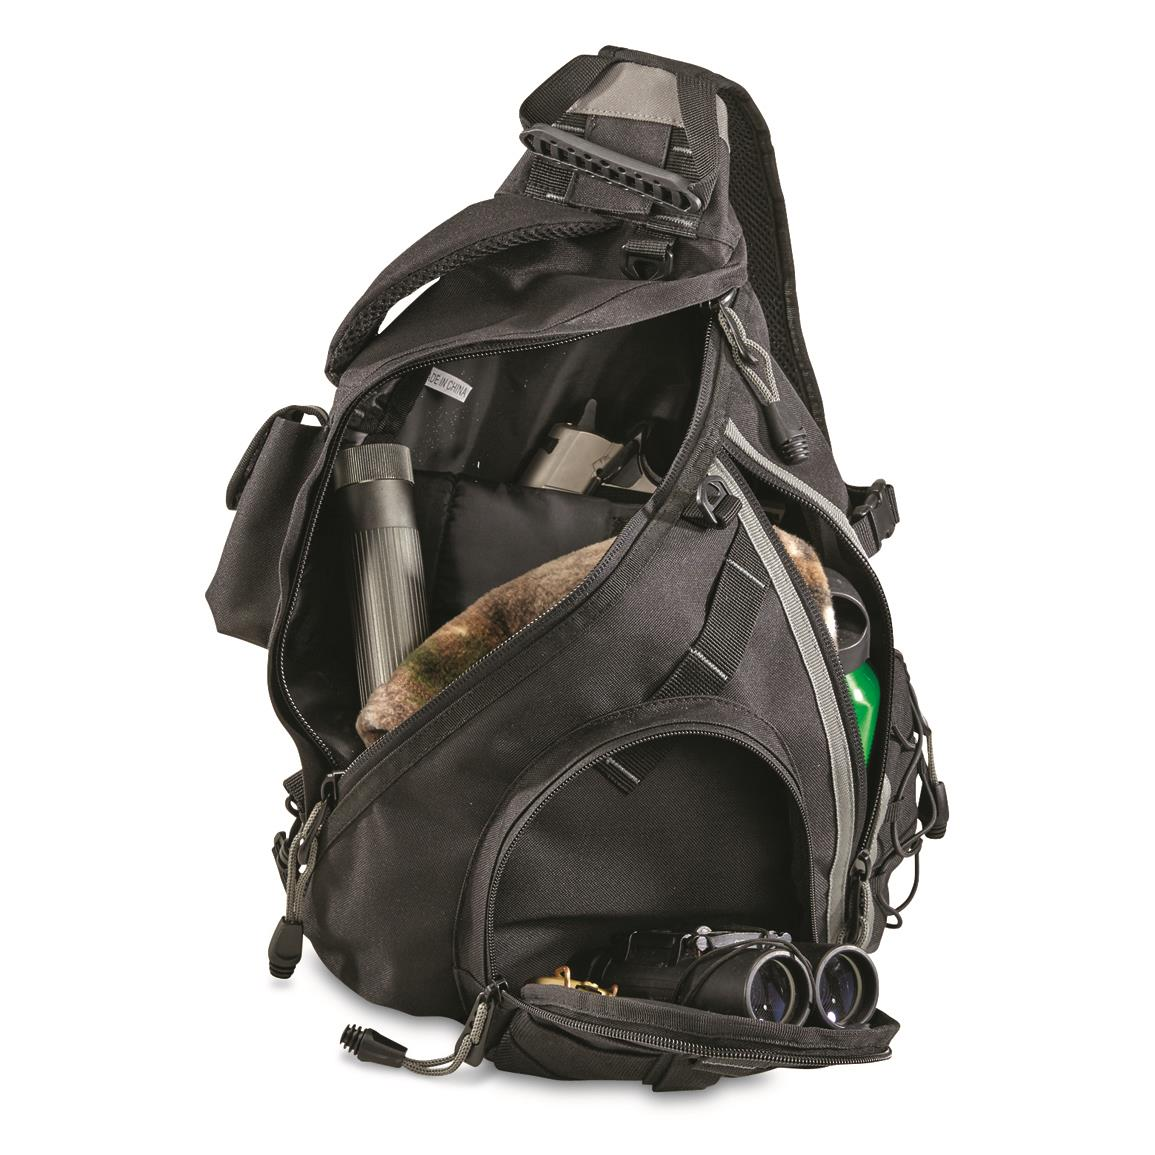 Undercover Tactical Sling Pack